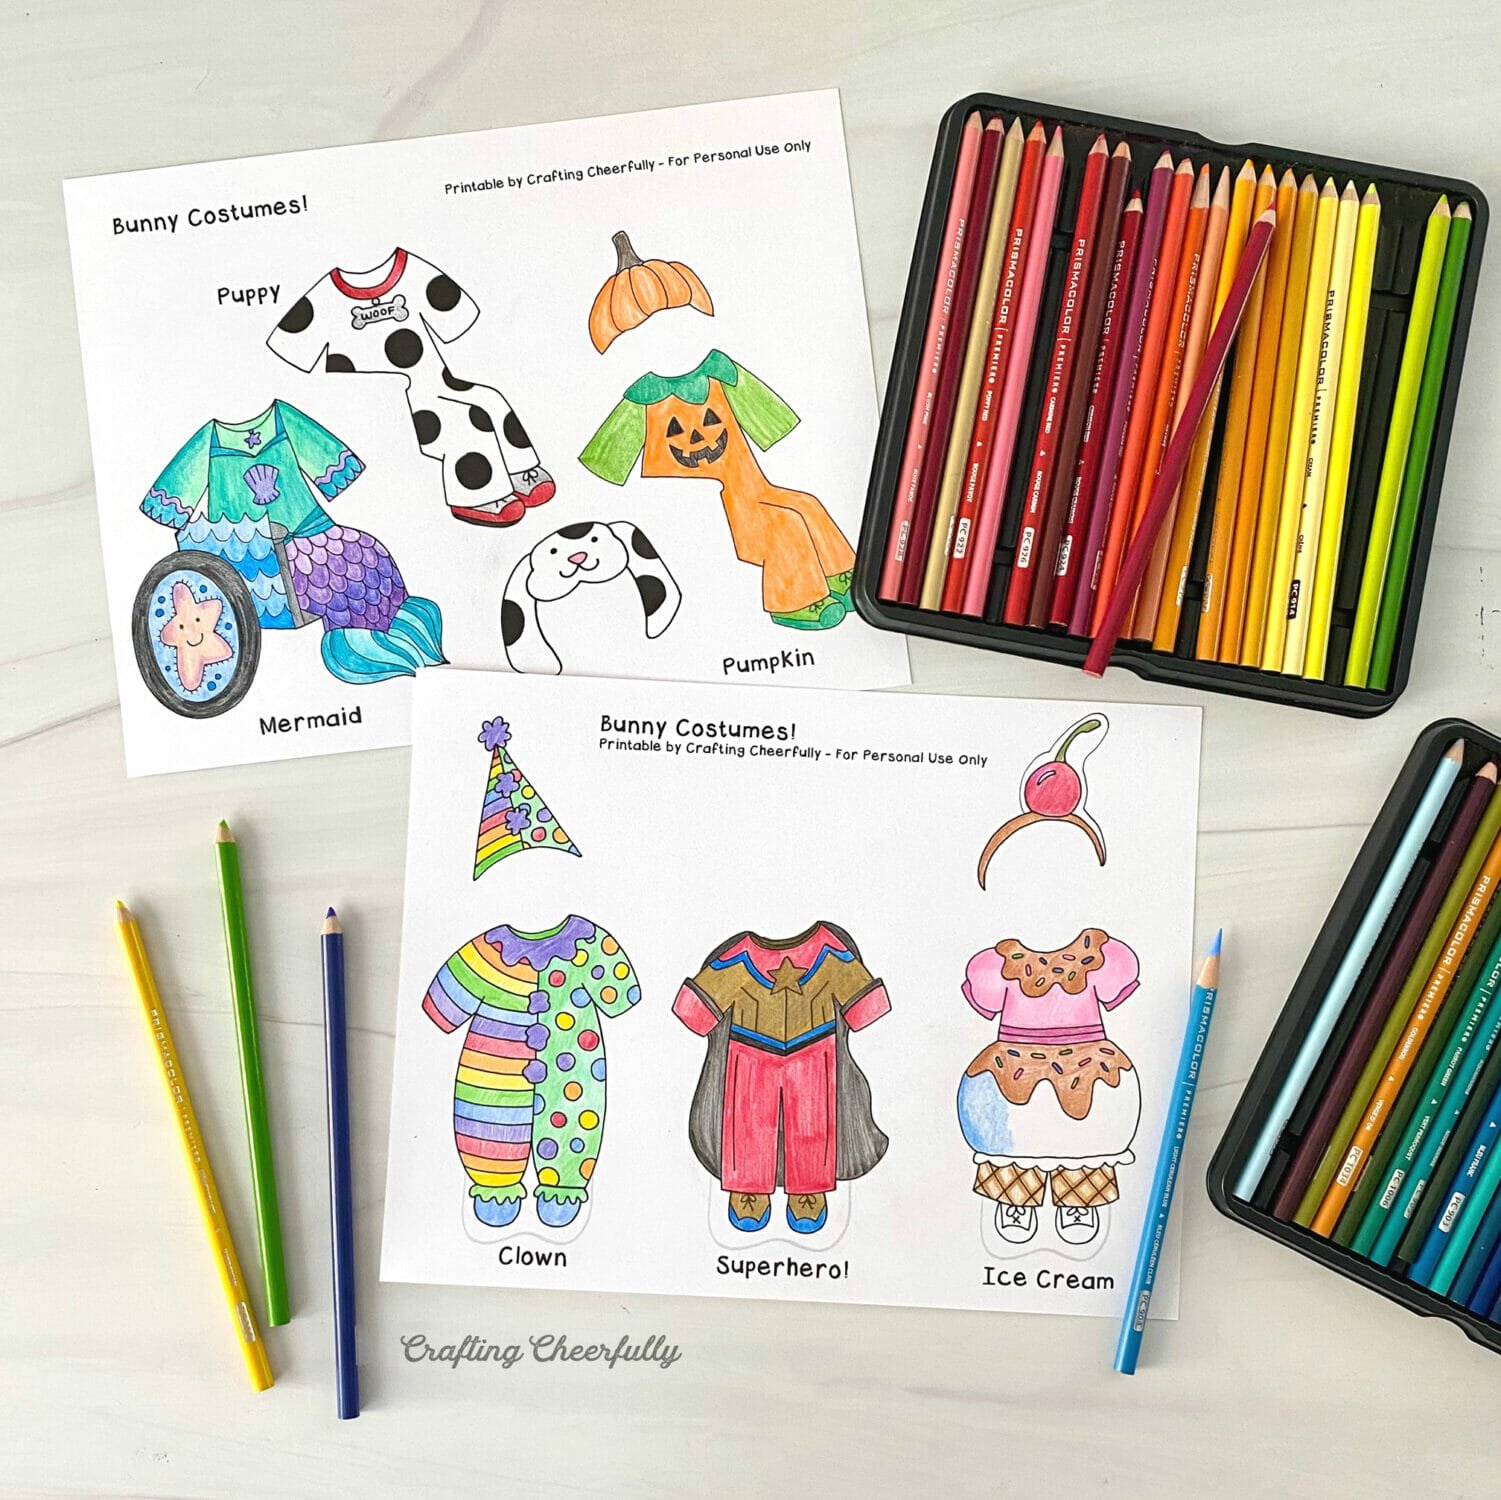 Coloring sheets with Halloween costumes lay on a table top next to trays of colored pencils.